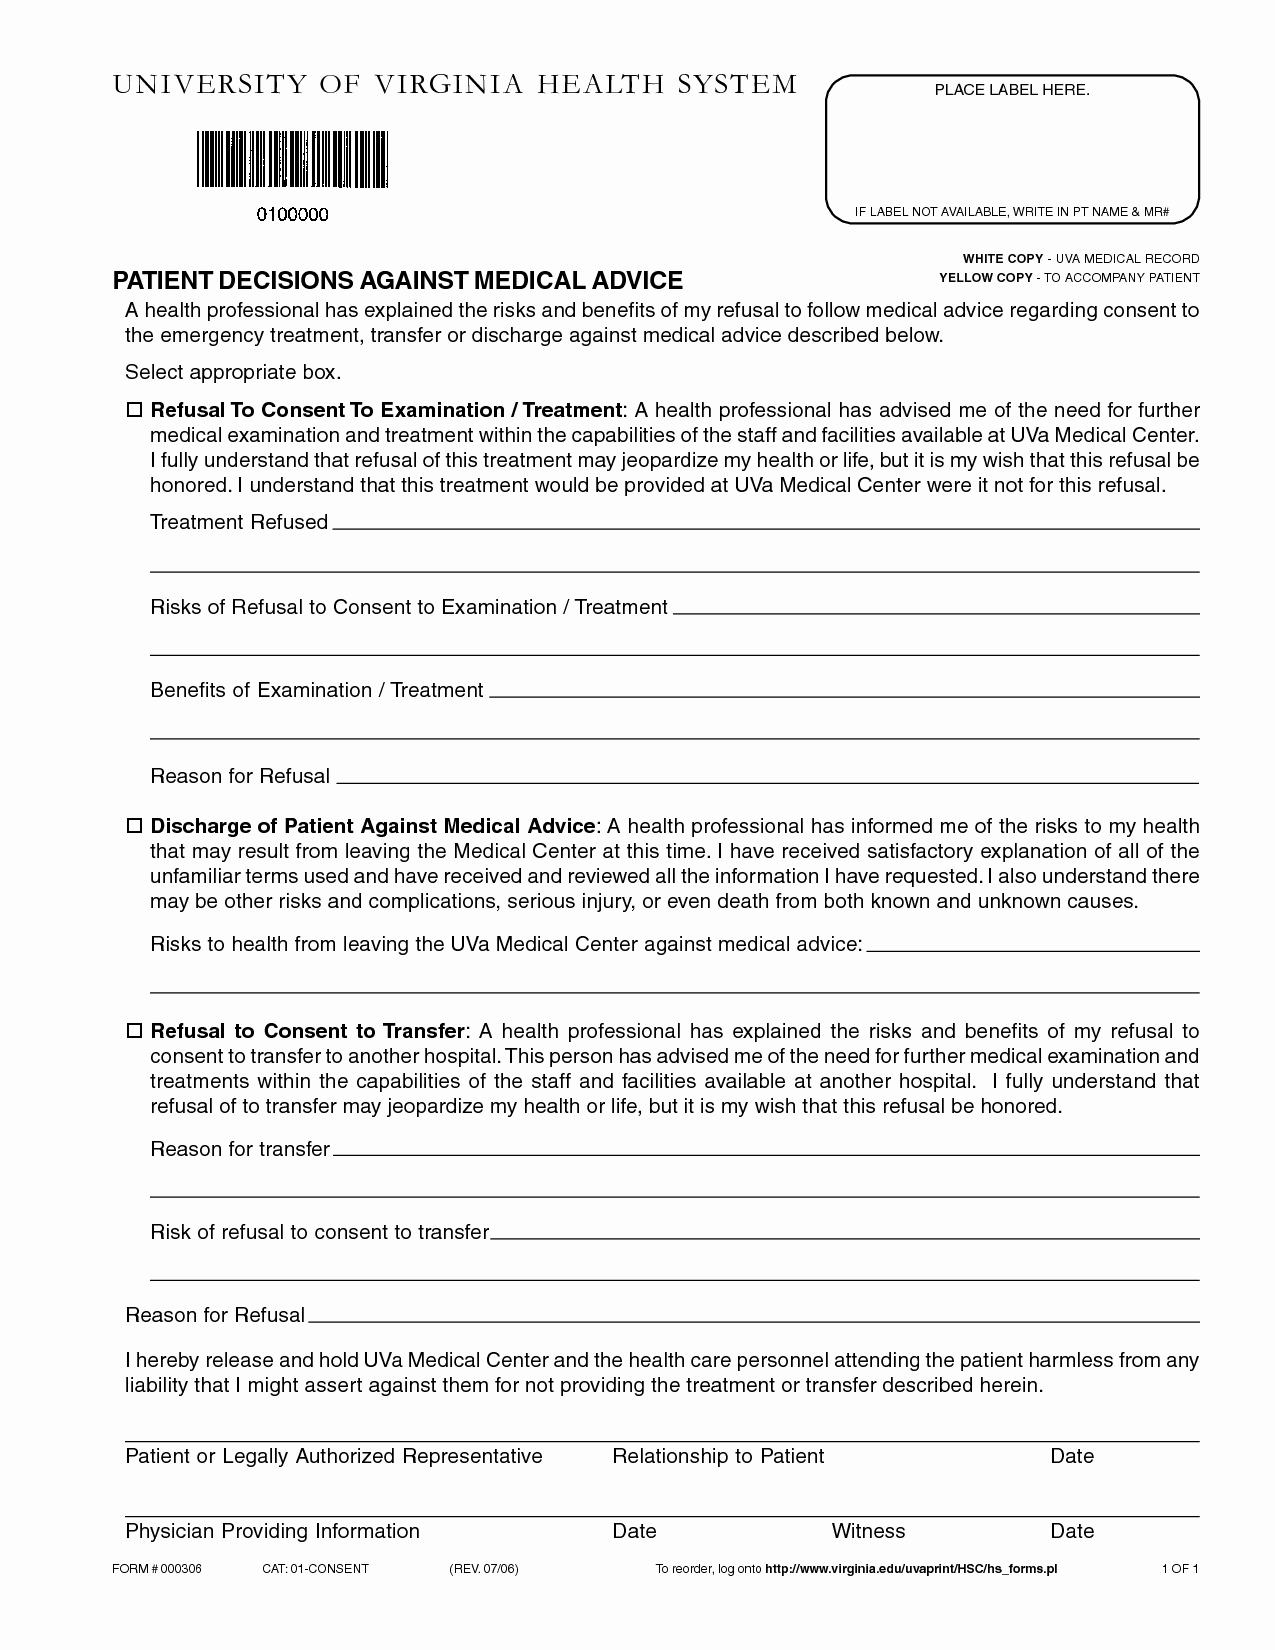 Emergency Room Note Template Unique Blank Printable Hospital Discharge forms